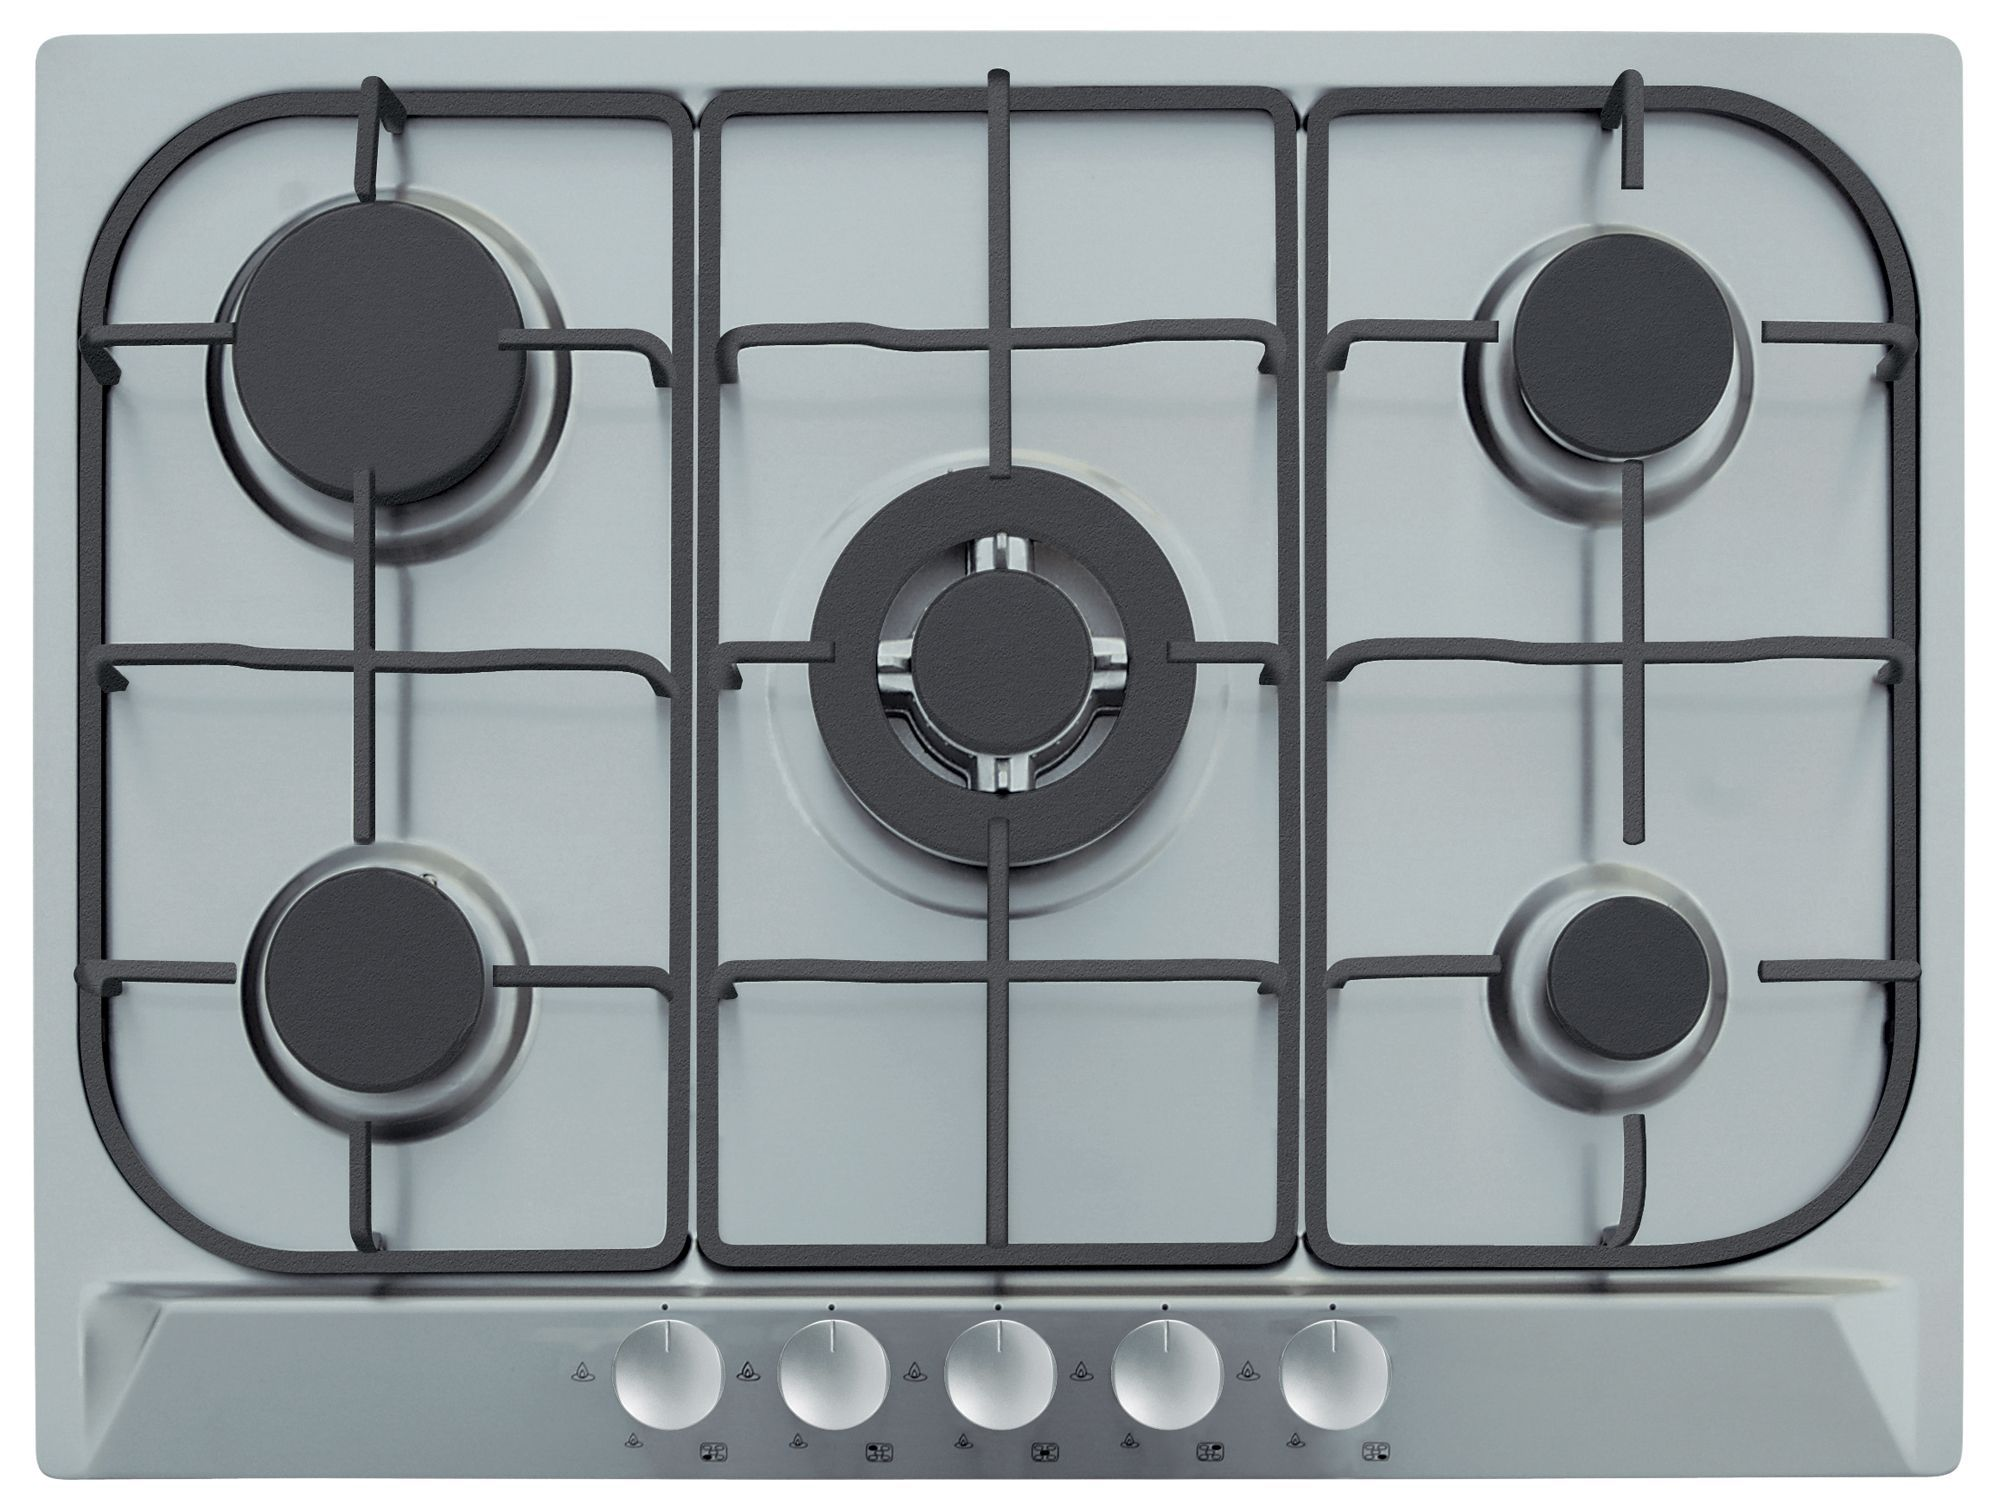 B And Q Kitchen Appliances Cooke Lewis Clgh1ss C 5 Burner Cast Iron Stainless Steel Gas